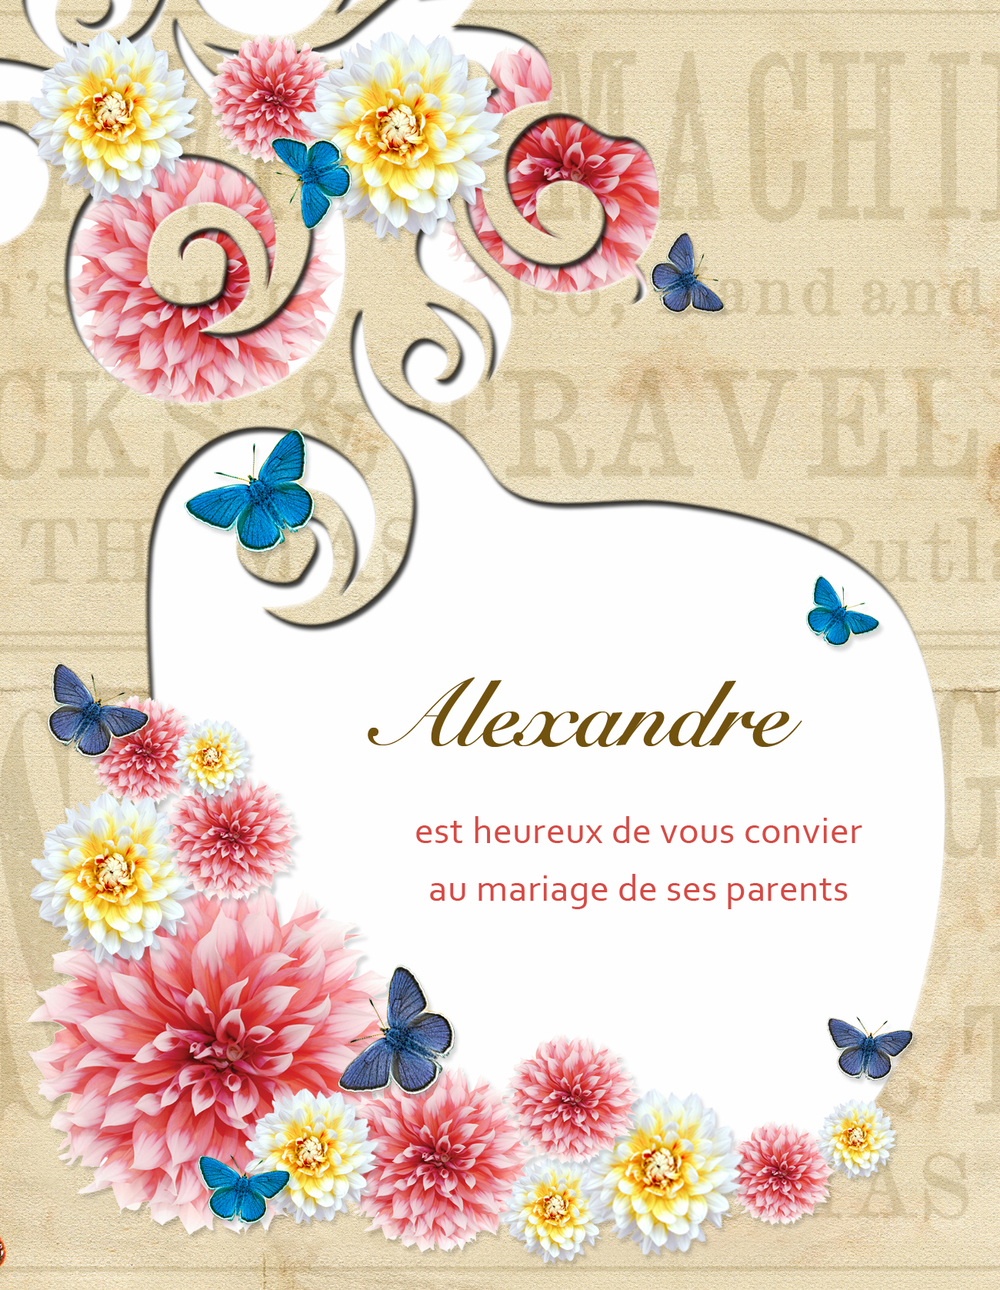 Front design of card.